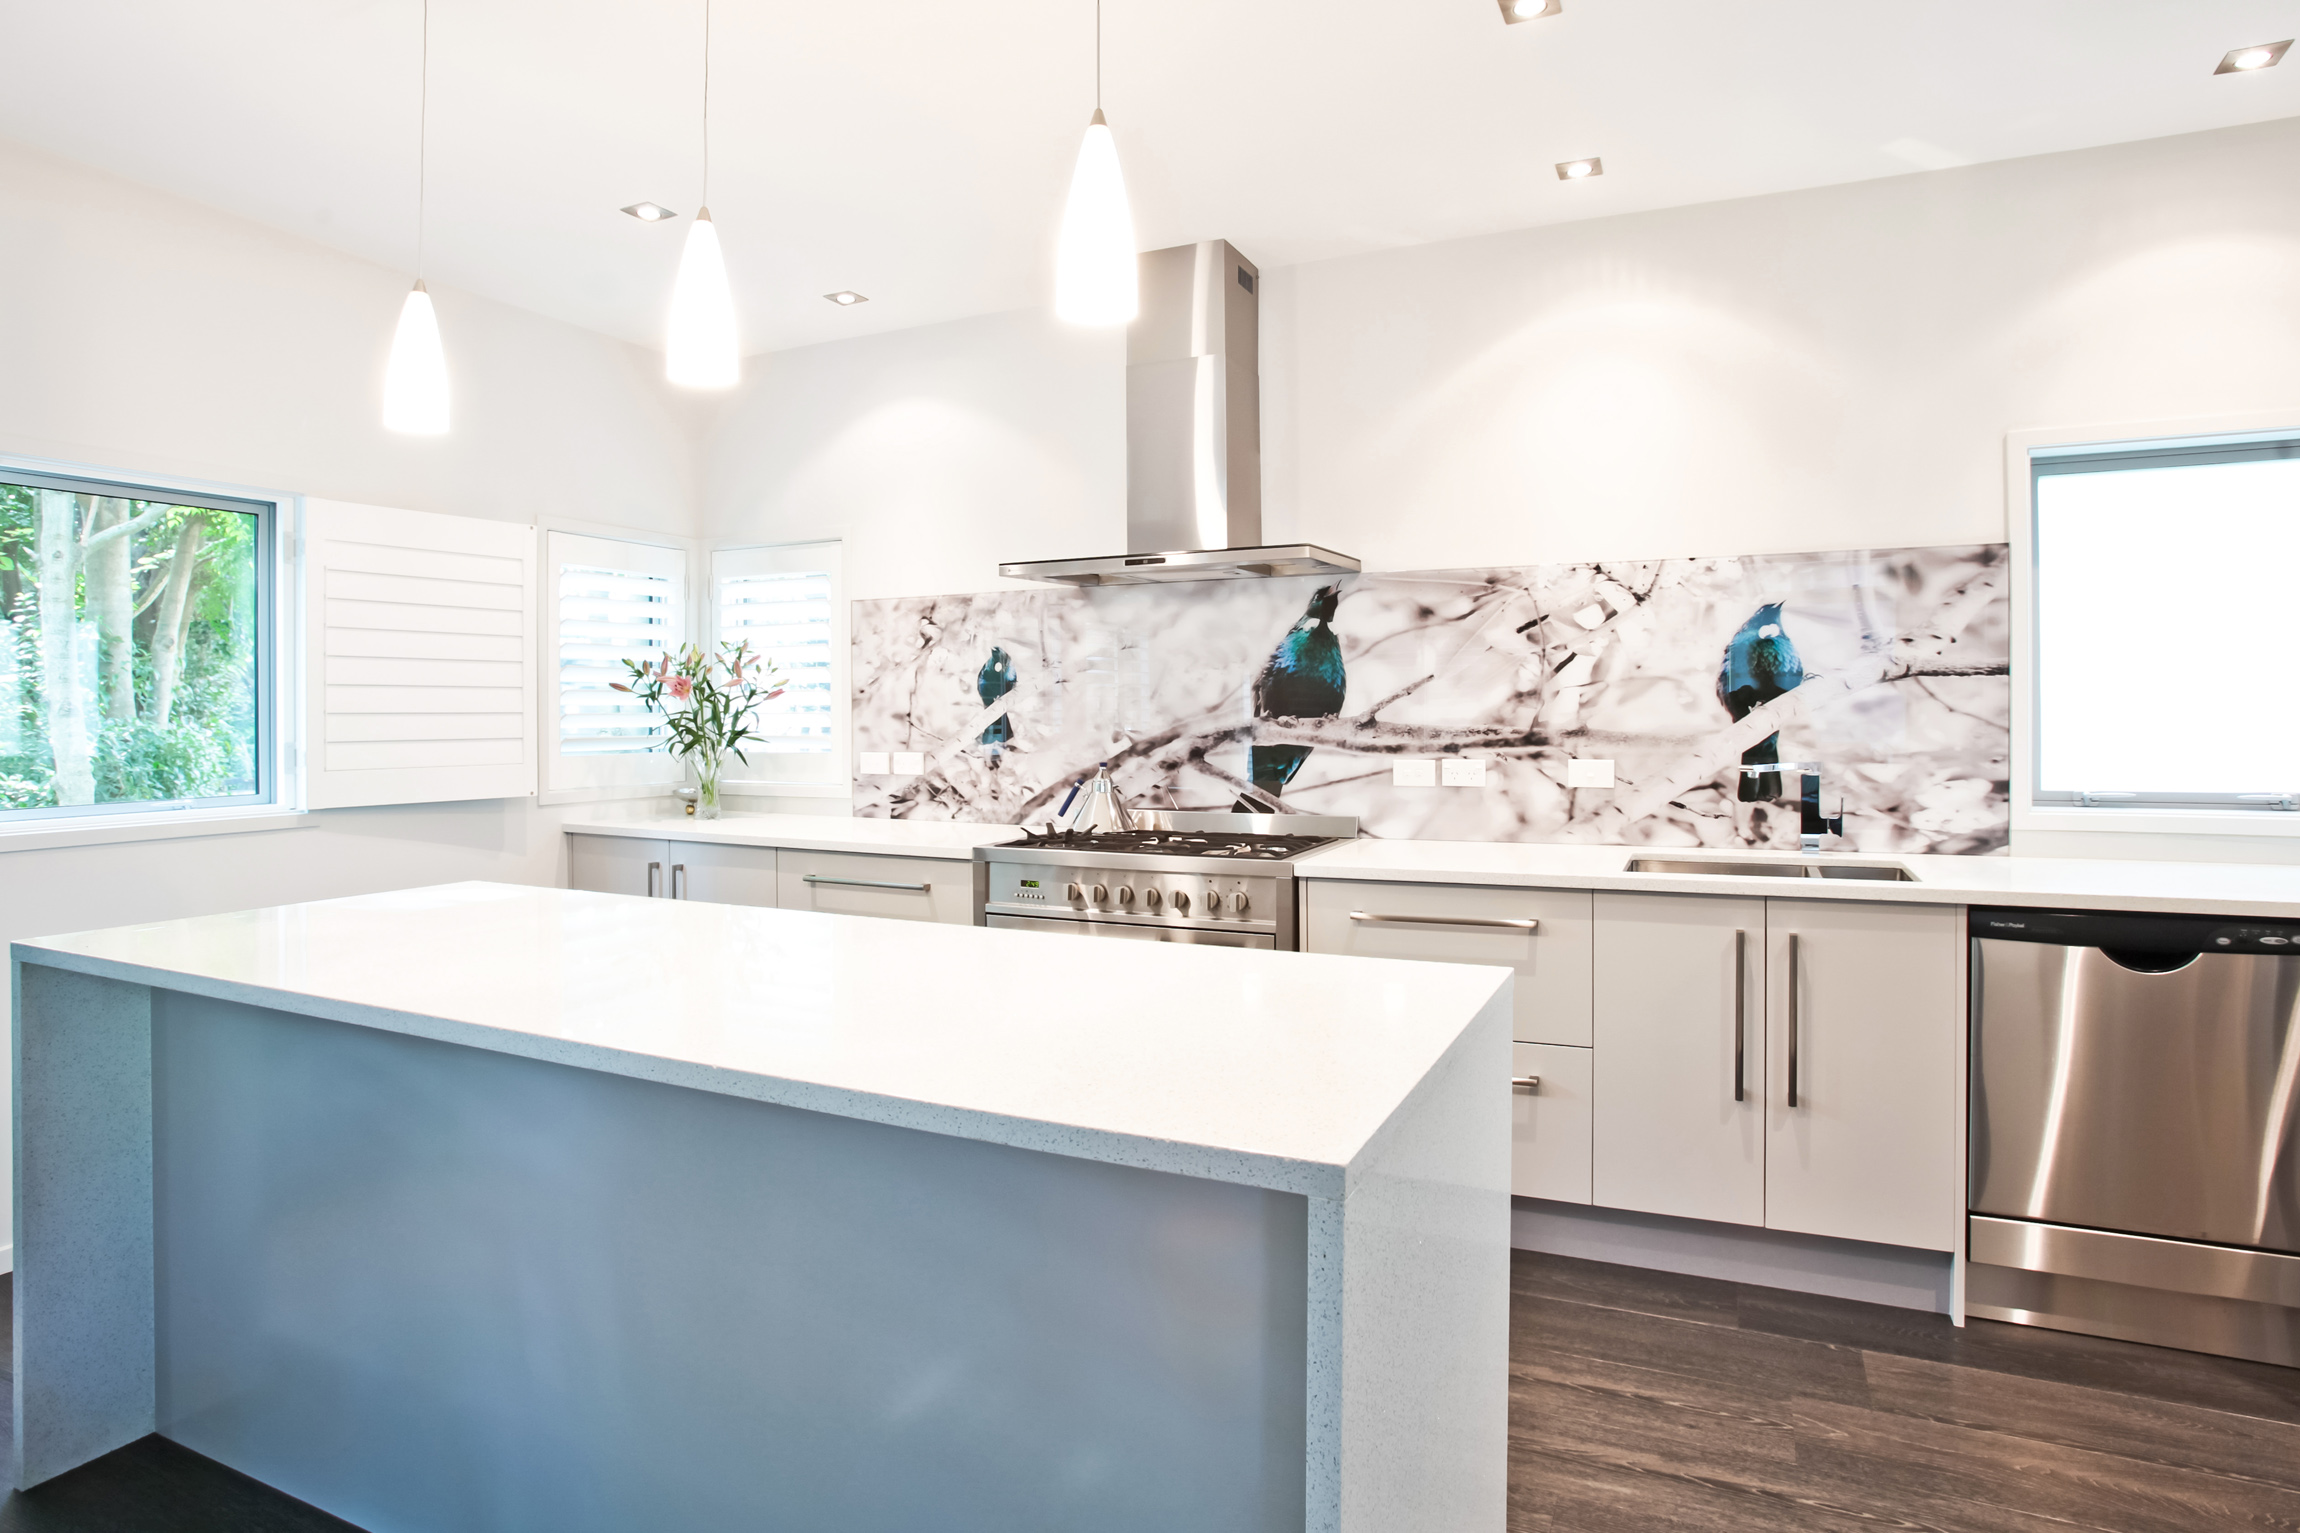 'Tui Song' printed image on glass splashback by Lucy G